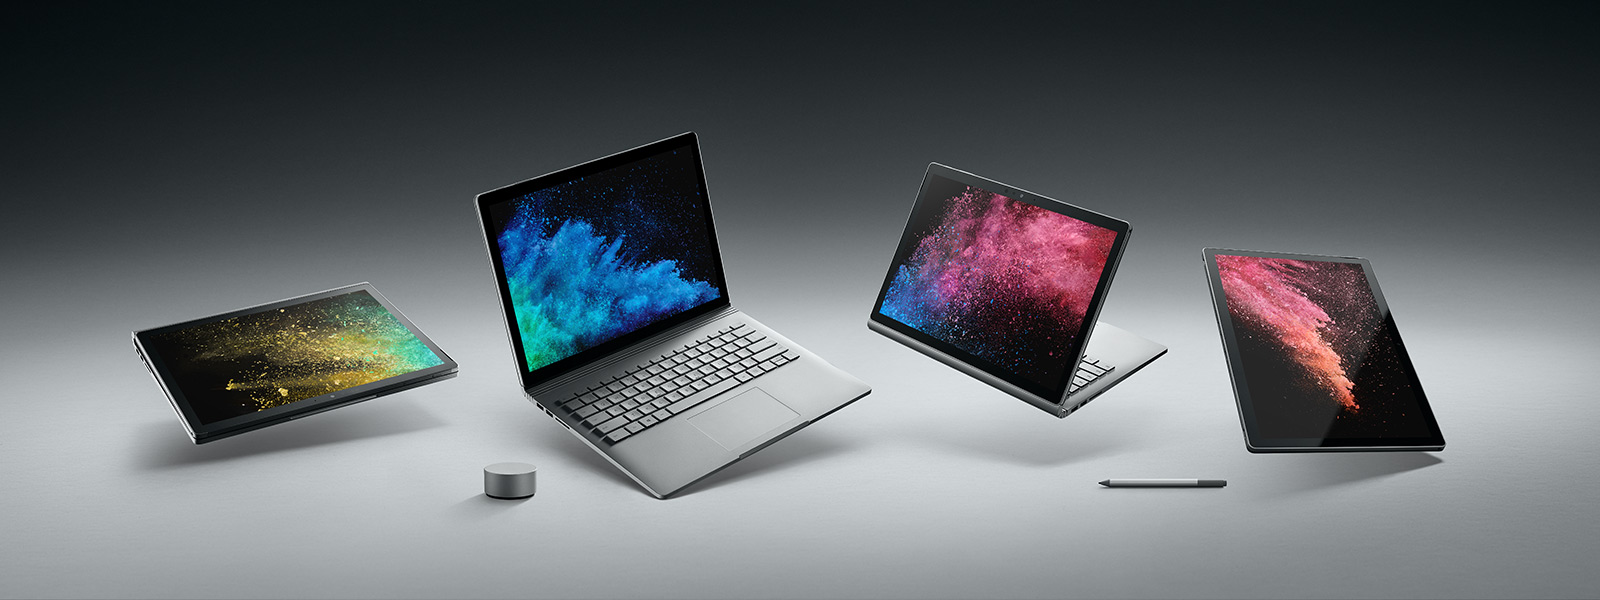 Surface Book 2 shown in different modes, with Surface Dial and Surface Pen.